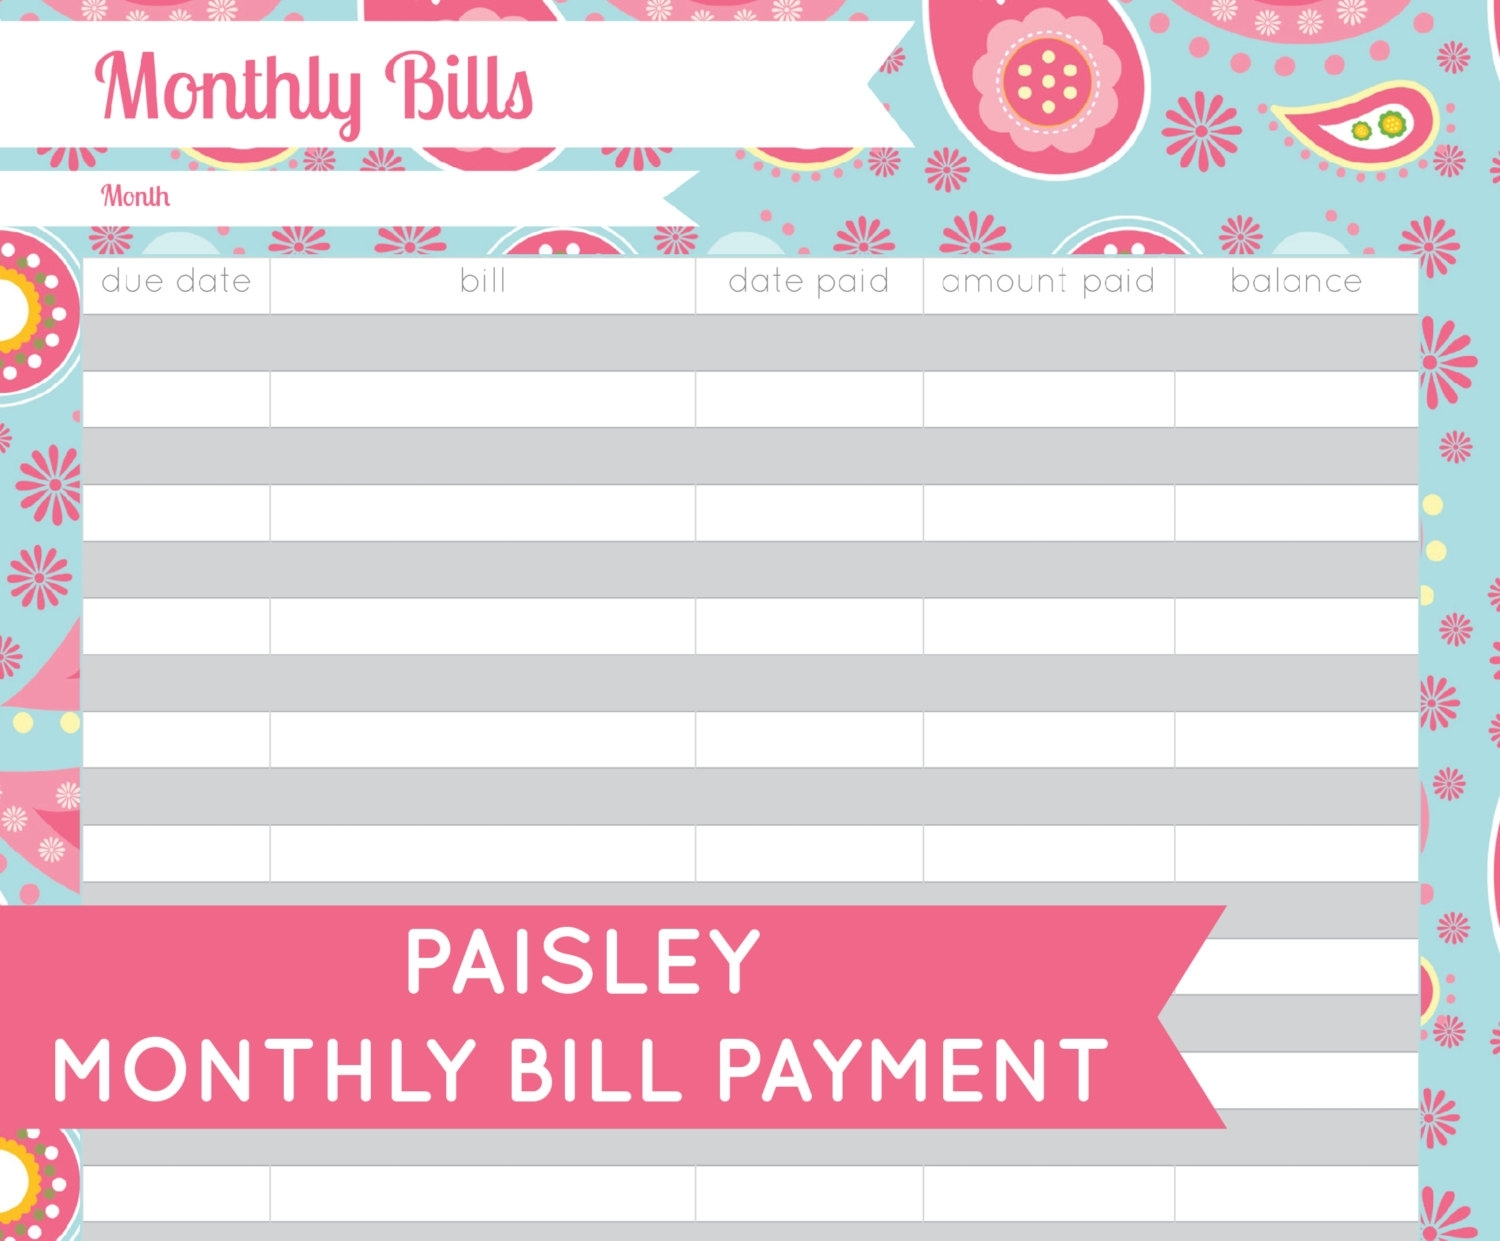 Free Printable Monthly Bill Organizer Template | Camisonline in Free Bill Organizer Printable Sheets